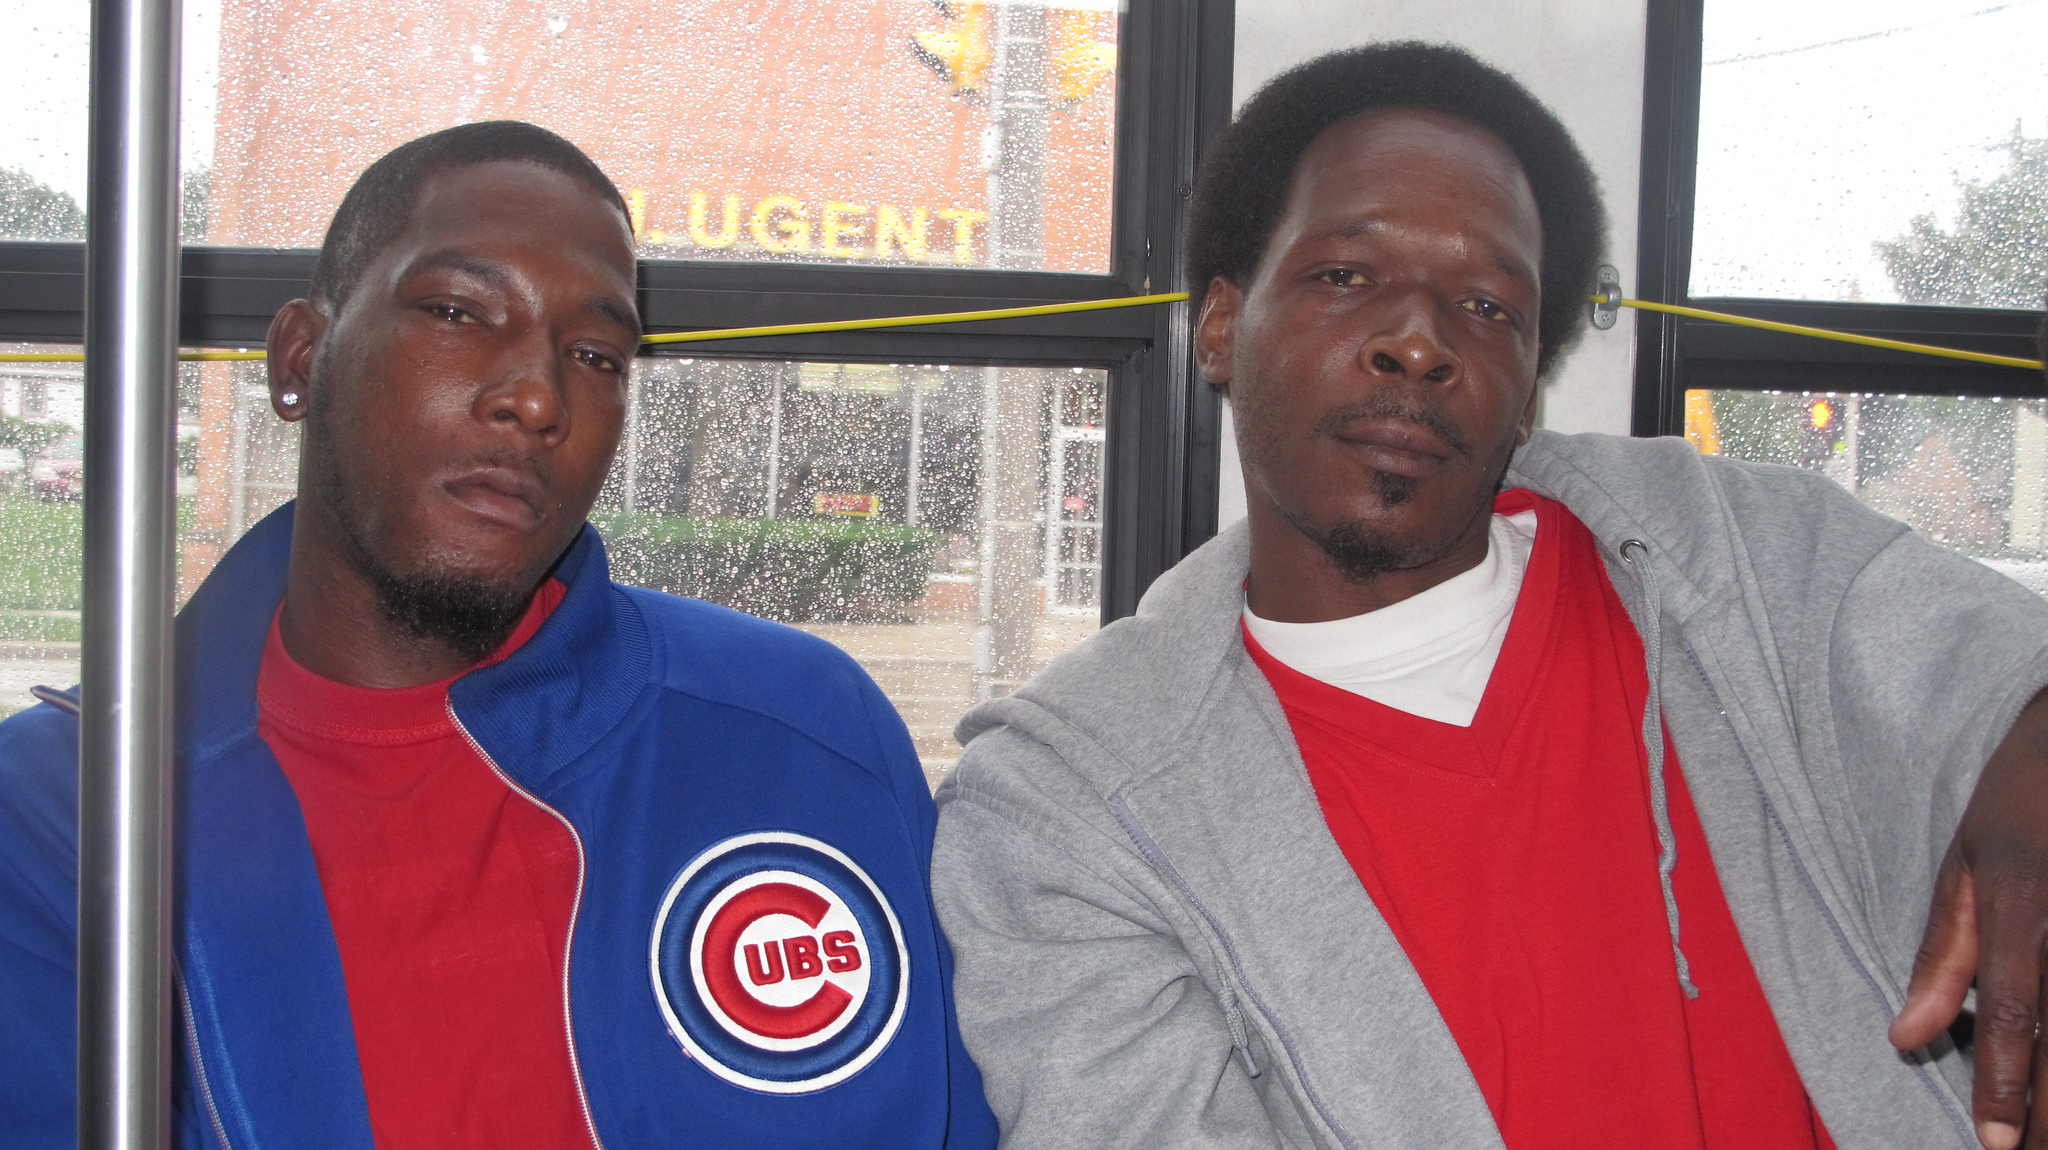 Jovan Armstrong (left) and Frederick Williams take the new Route 6 bus from the first stop at Port Washington Road and Capitol Drive to the last stop at BuySeasons in New Berlin to apply for jobs. (Photo by Andrea Waxman)